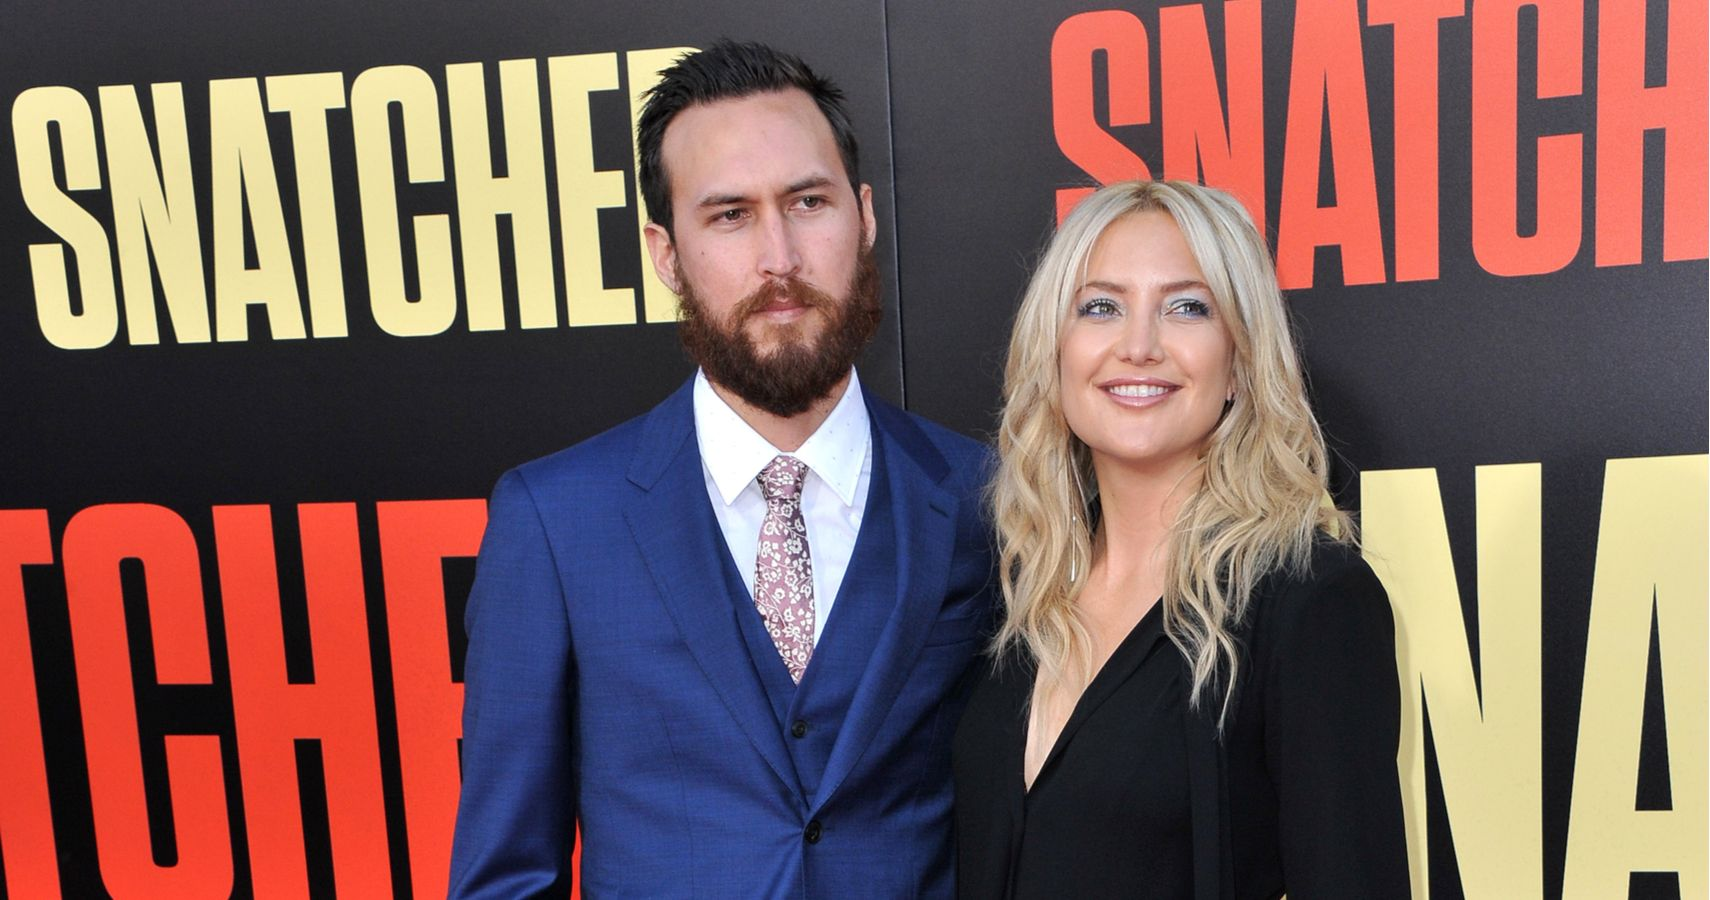 Kate Hudson Gets Engaged To Danny Fukijiwa, Shows Off Her Enormous Diamond Ring